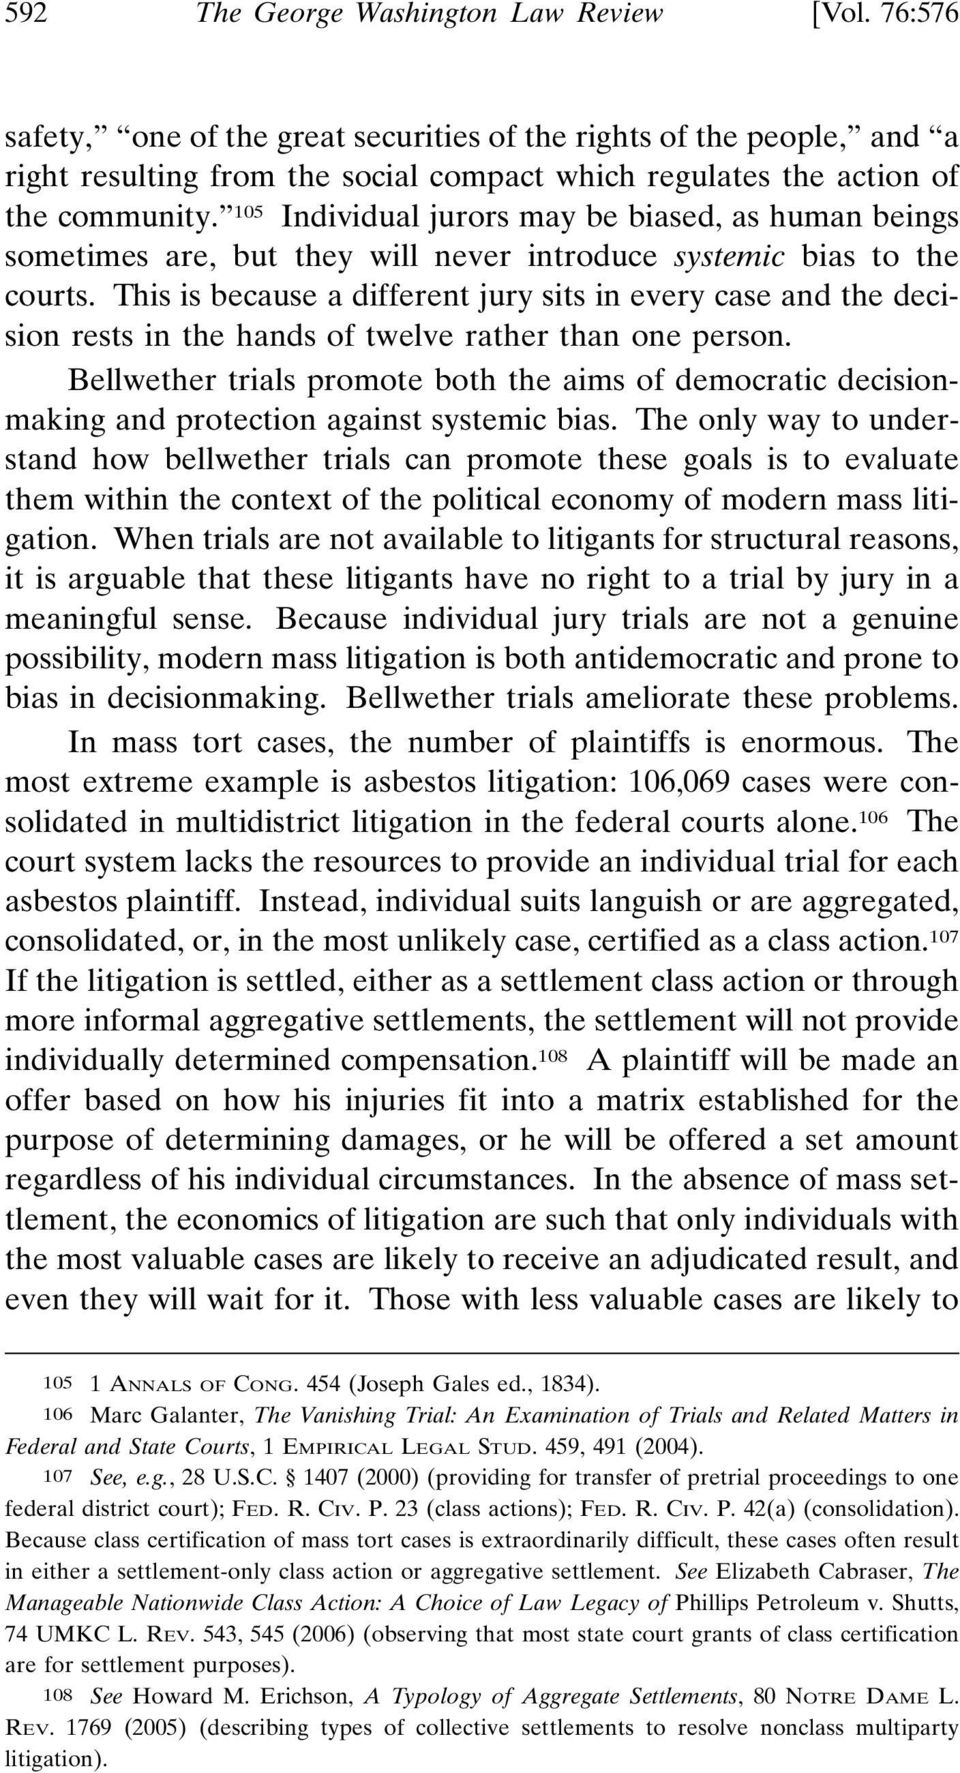 105 Individual jurors may be biased, as human beings sometimes are, but they will never introduce systemic bias to the courts.